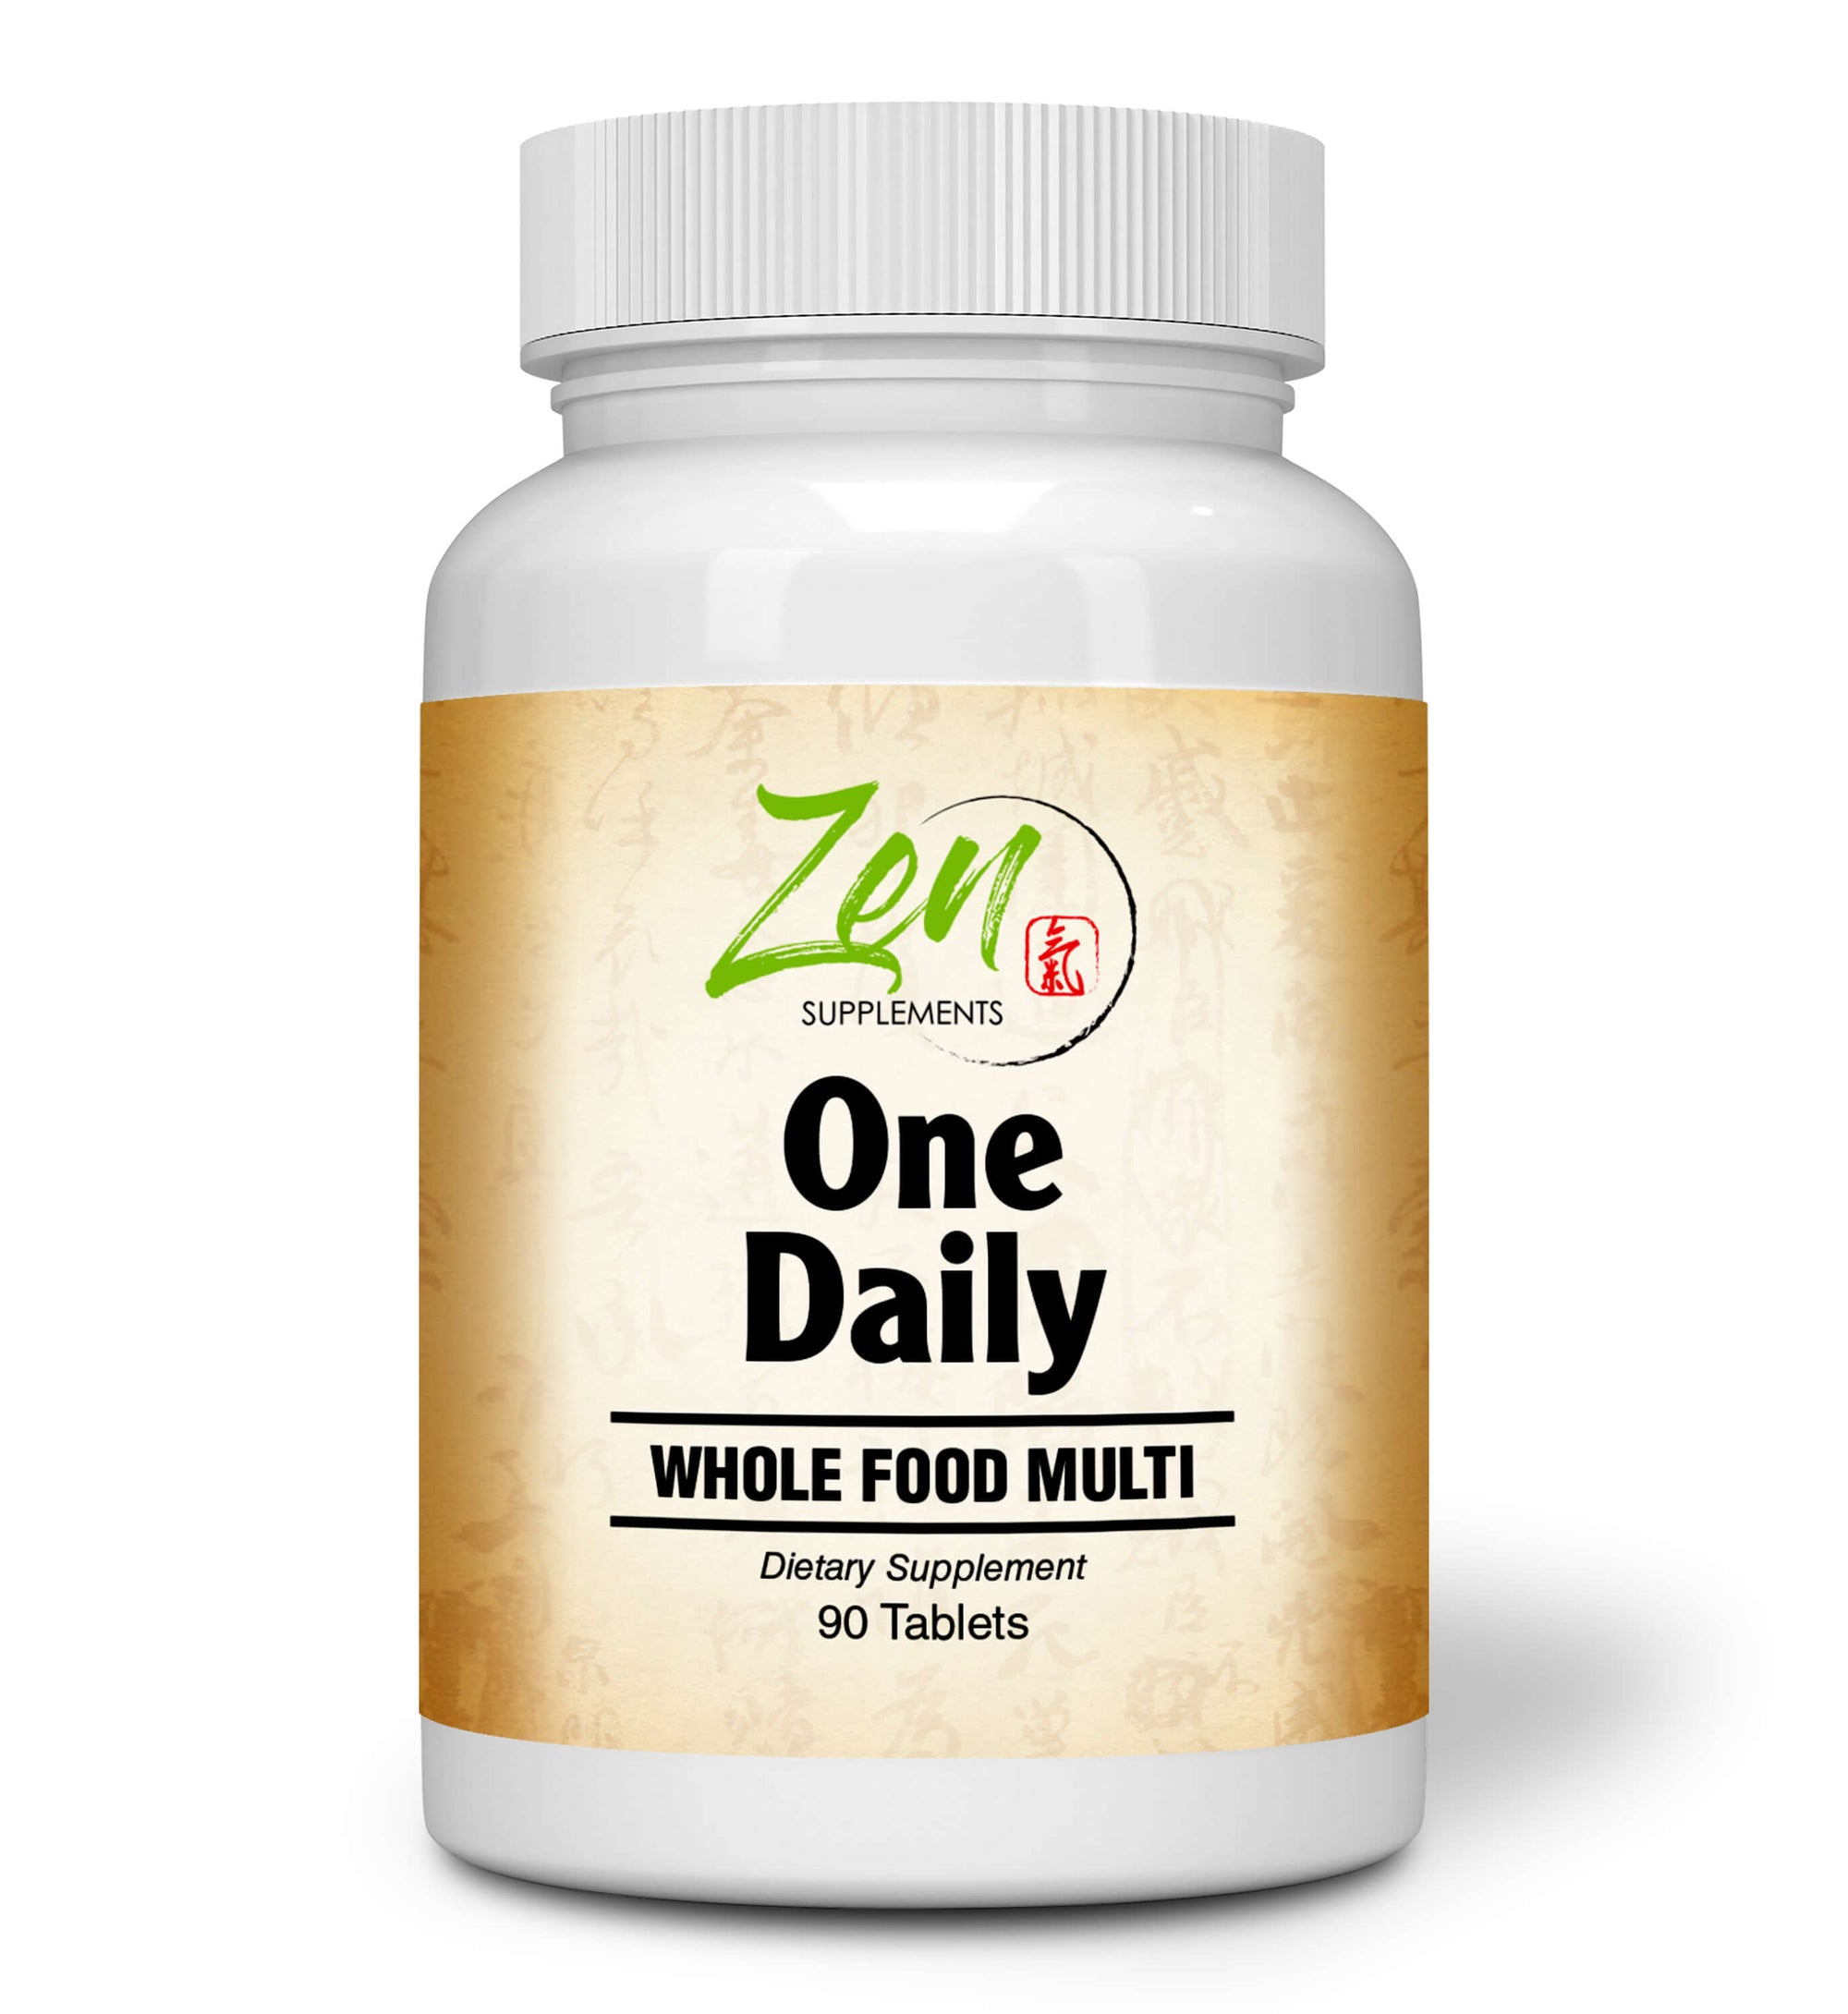 One Daily Multi-Vitamin With Probiotics & Digestive Enzymes - 90 Tabs